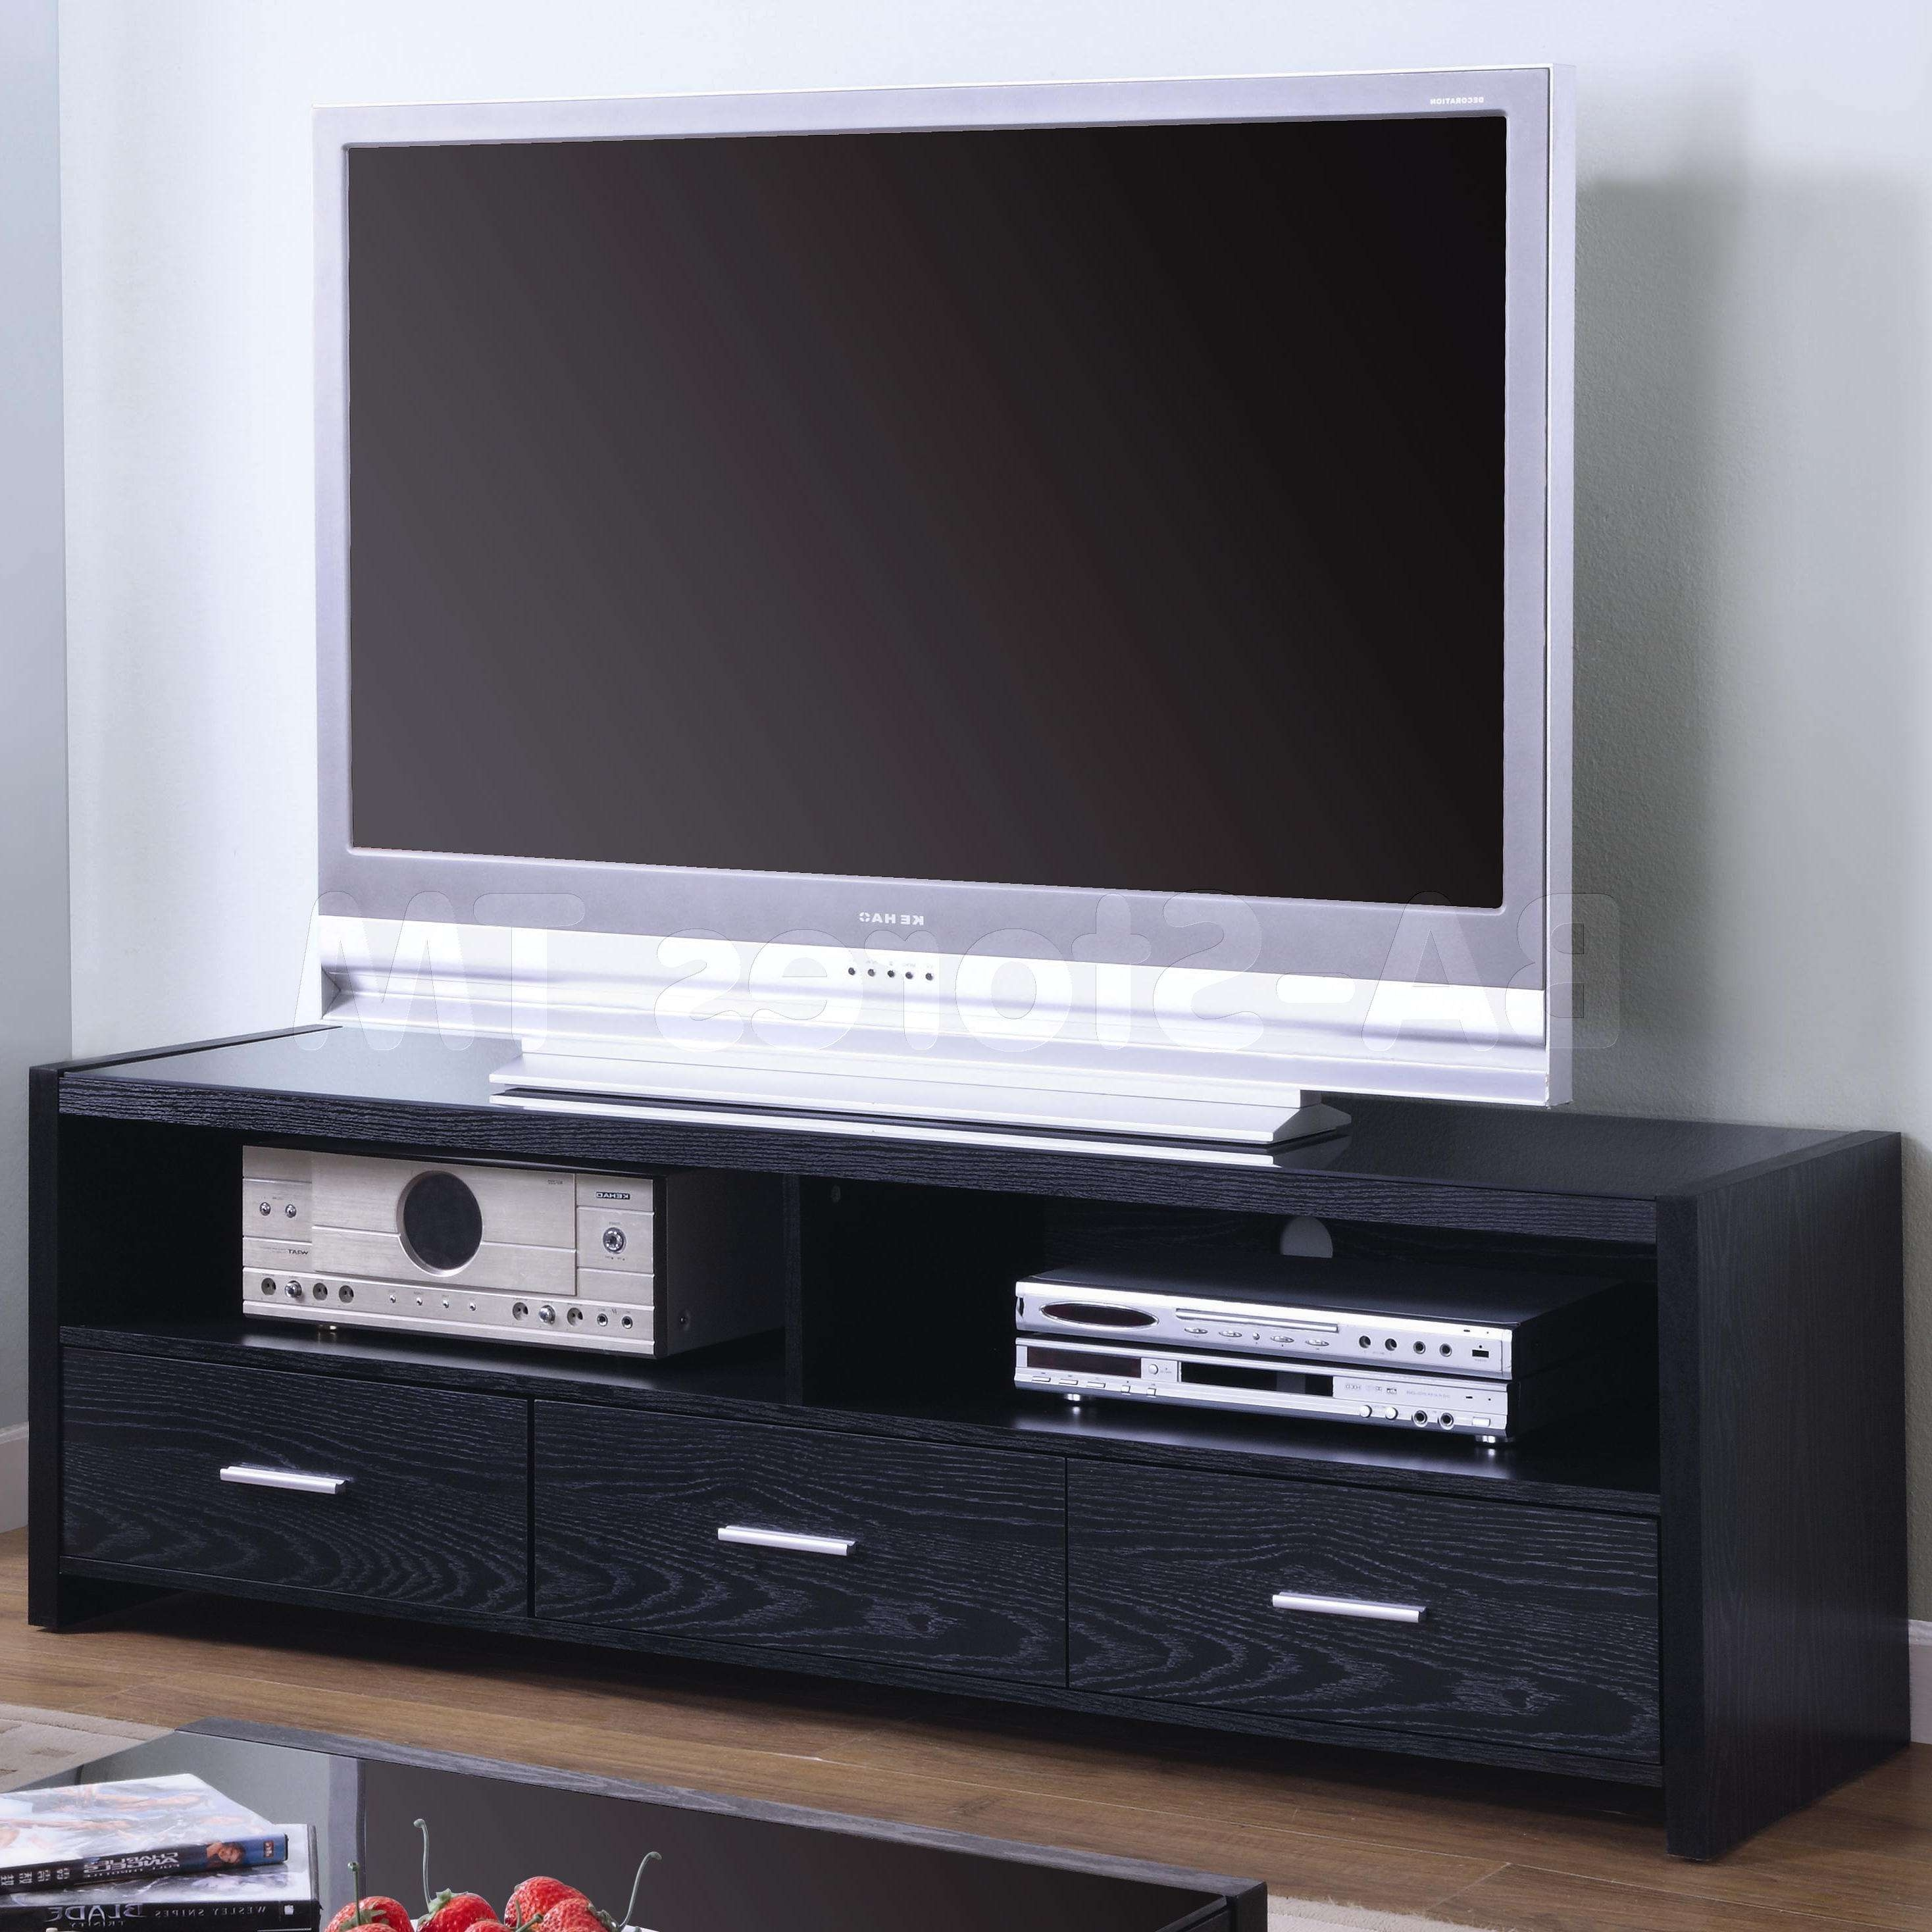 Best Contemporary Tv Console For Flat Screens | All Contemporary For Contemporary Tv Stands For Flat Screens (View 1 of 15)